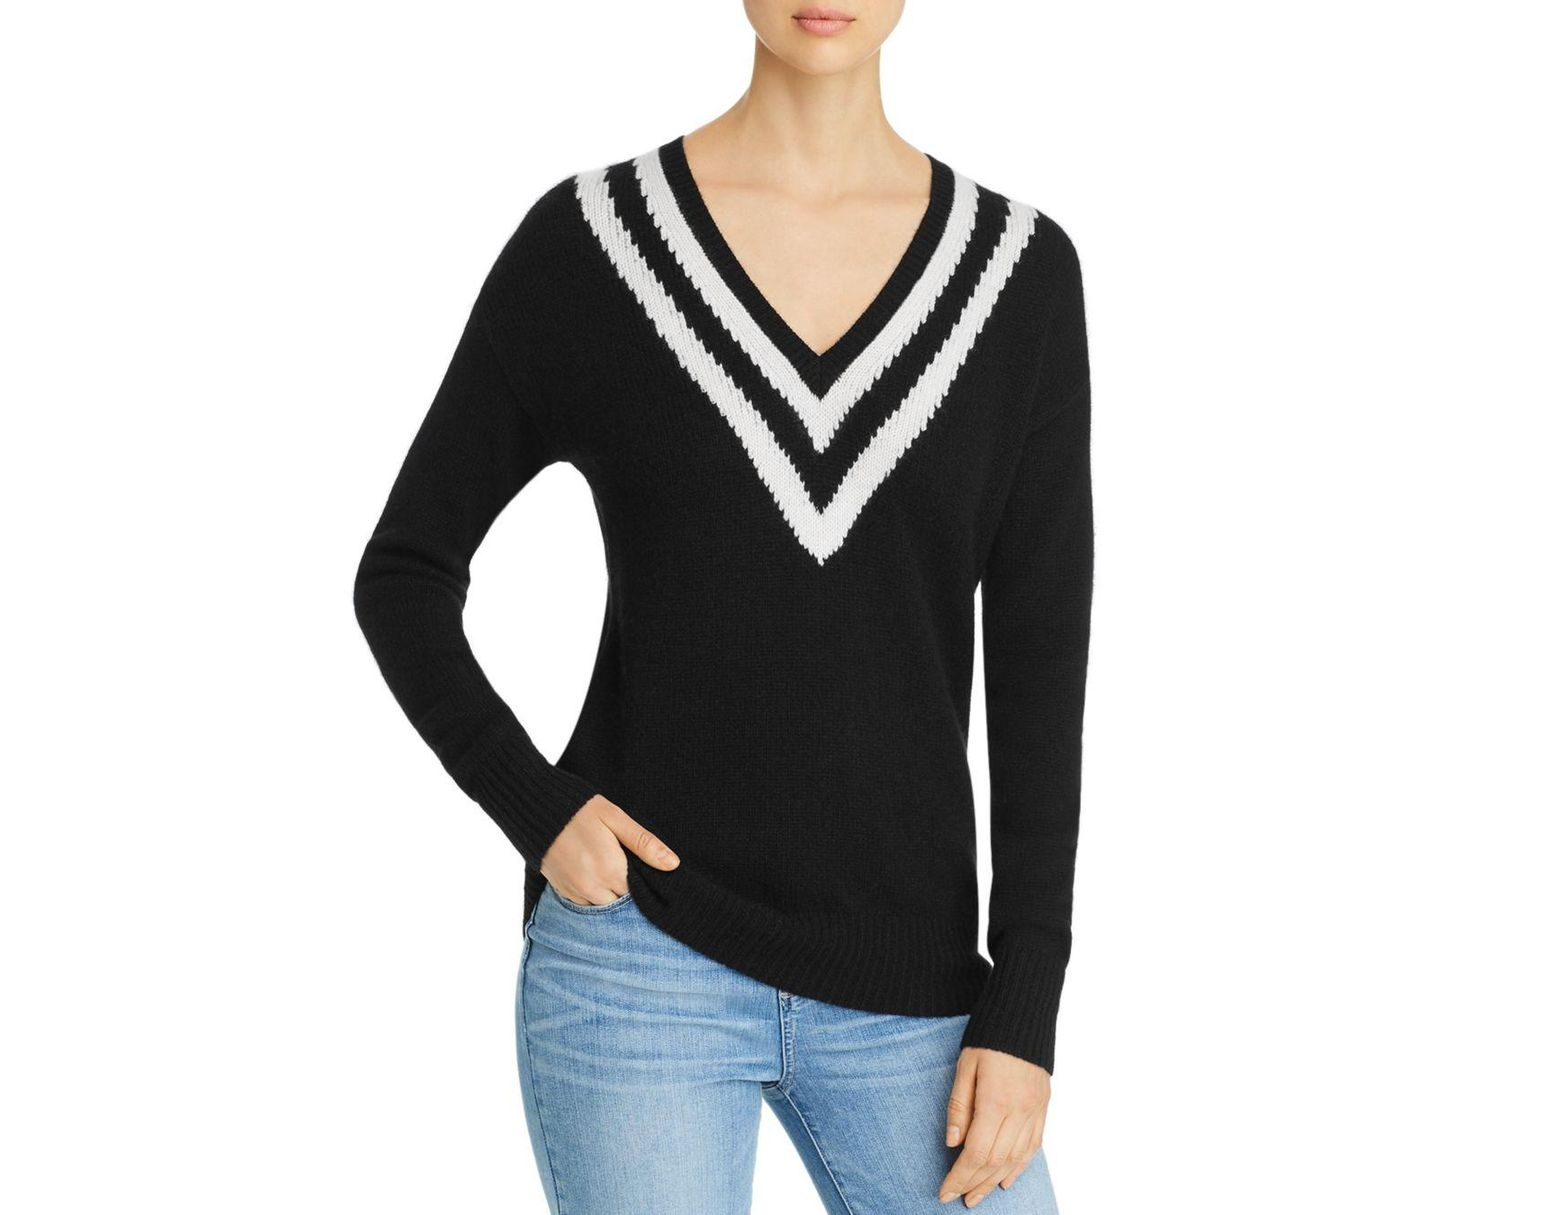 e60aac51766 C By Bloomingdale's Varsity - Stripe Cashmere Sweater in Black - Lyst